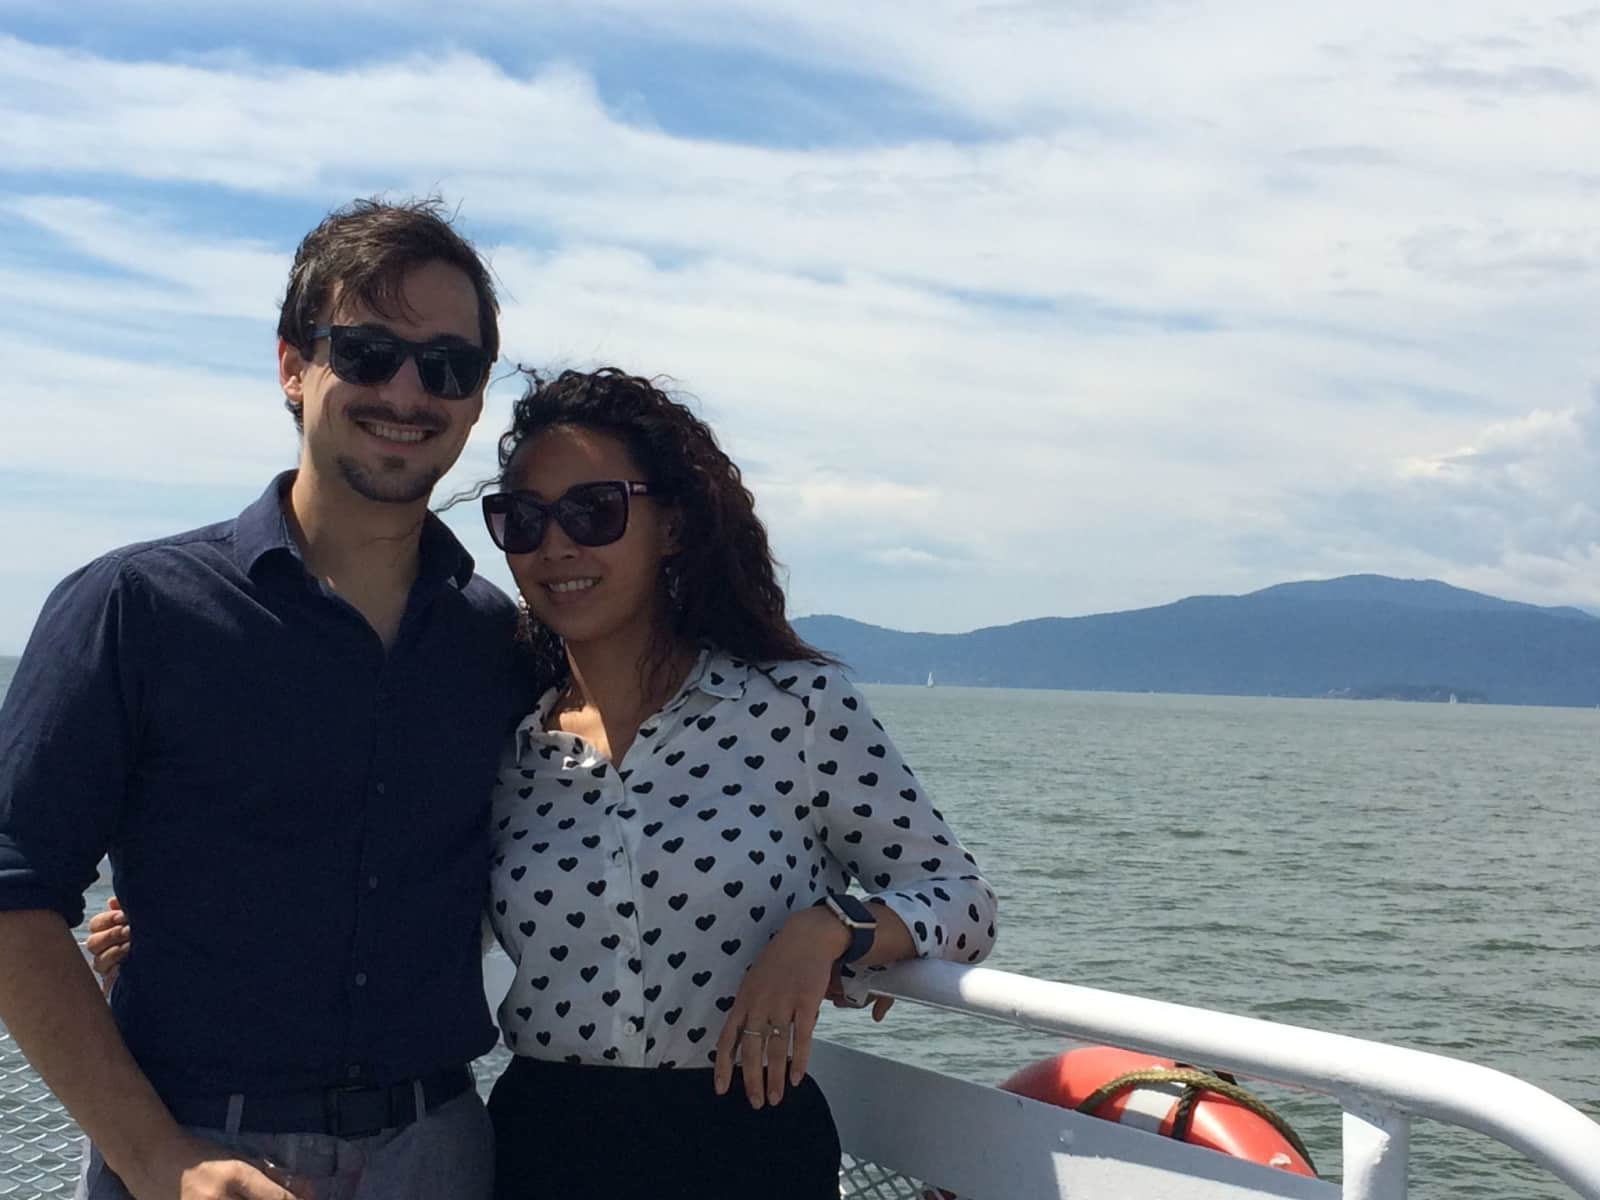 Arnold & Stephanie from Vancouver, British Columbia, Canada